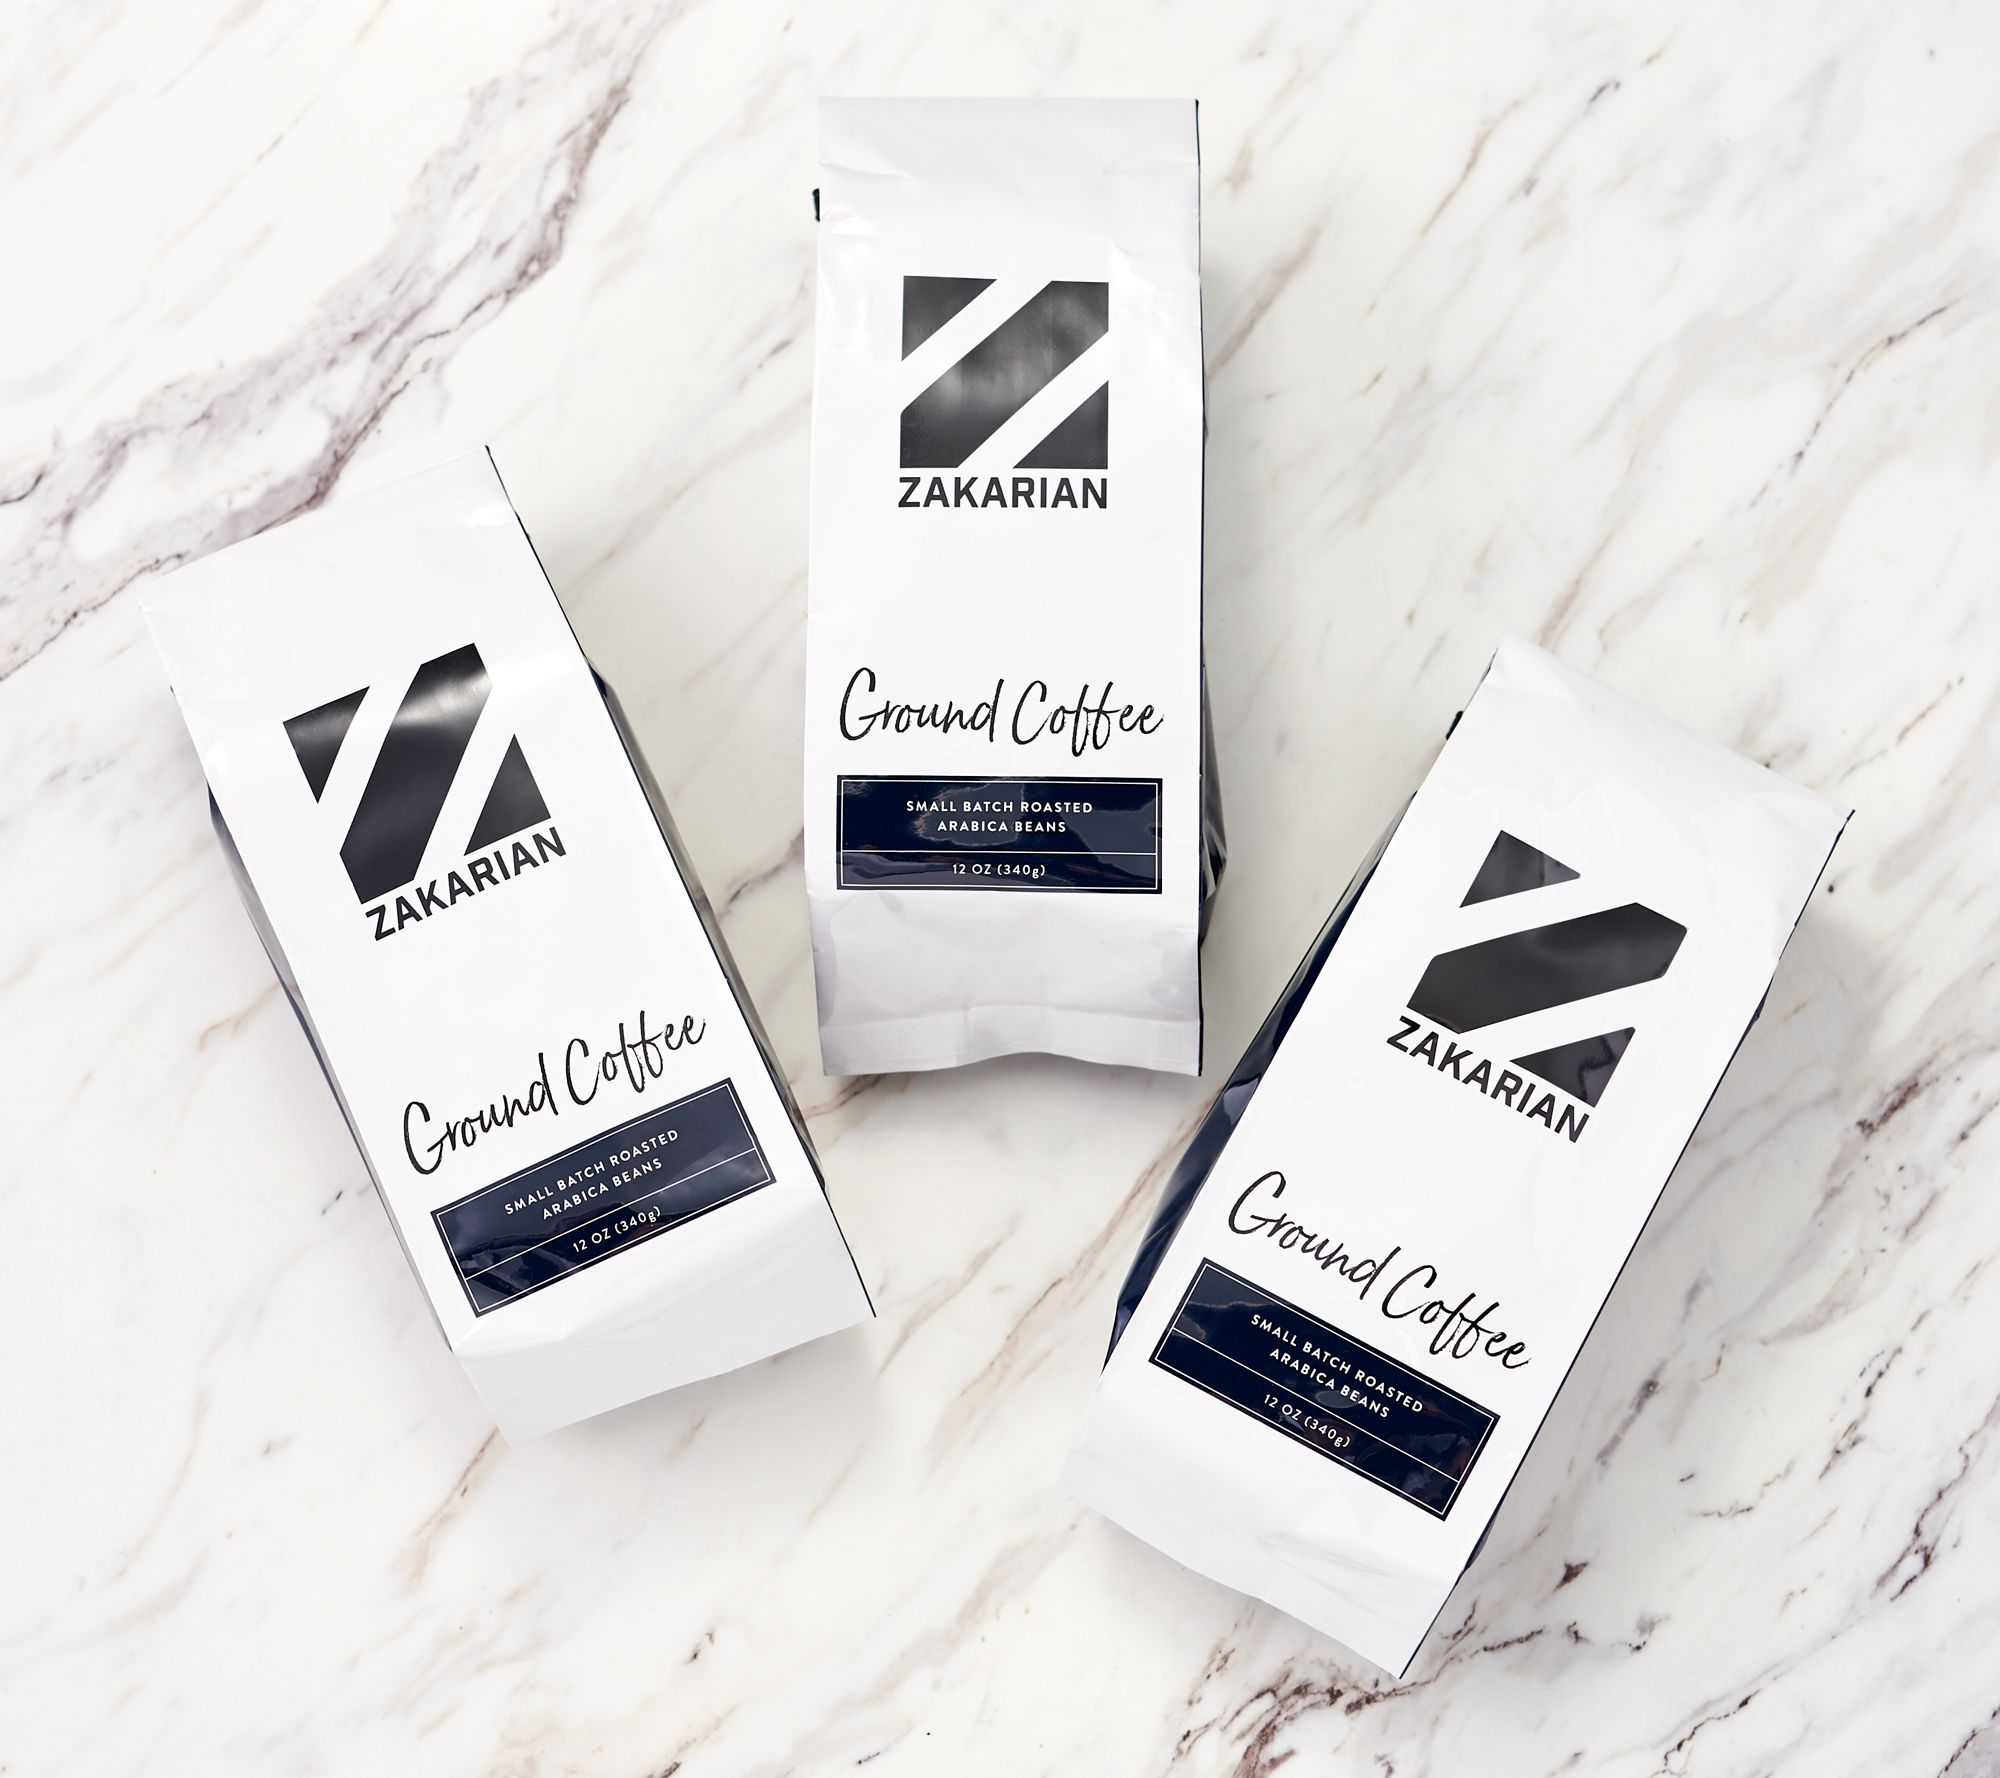 3-Pack Geoffrey Zakarian Arabica Coffee 12-oz Bag